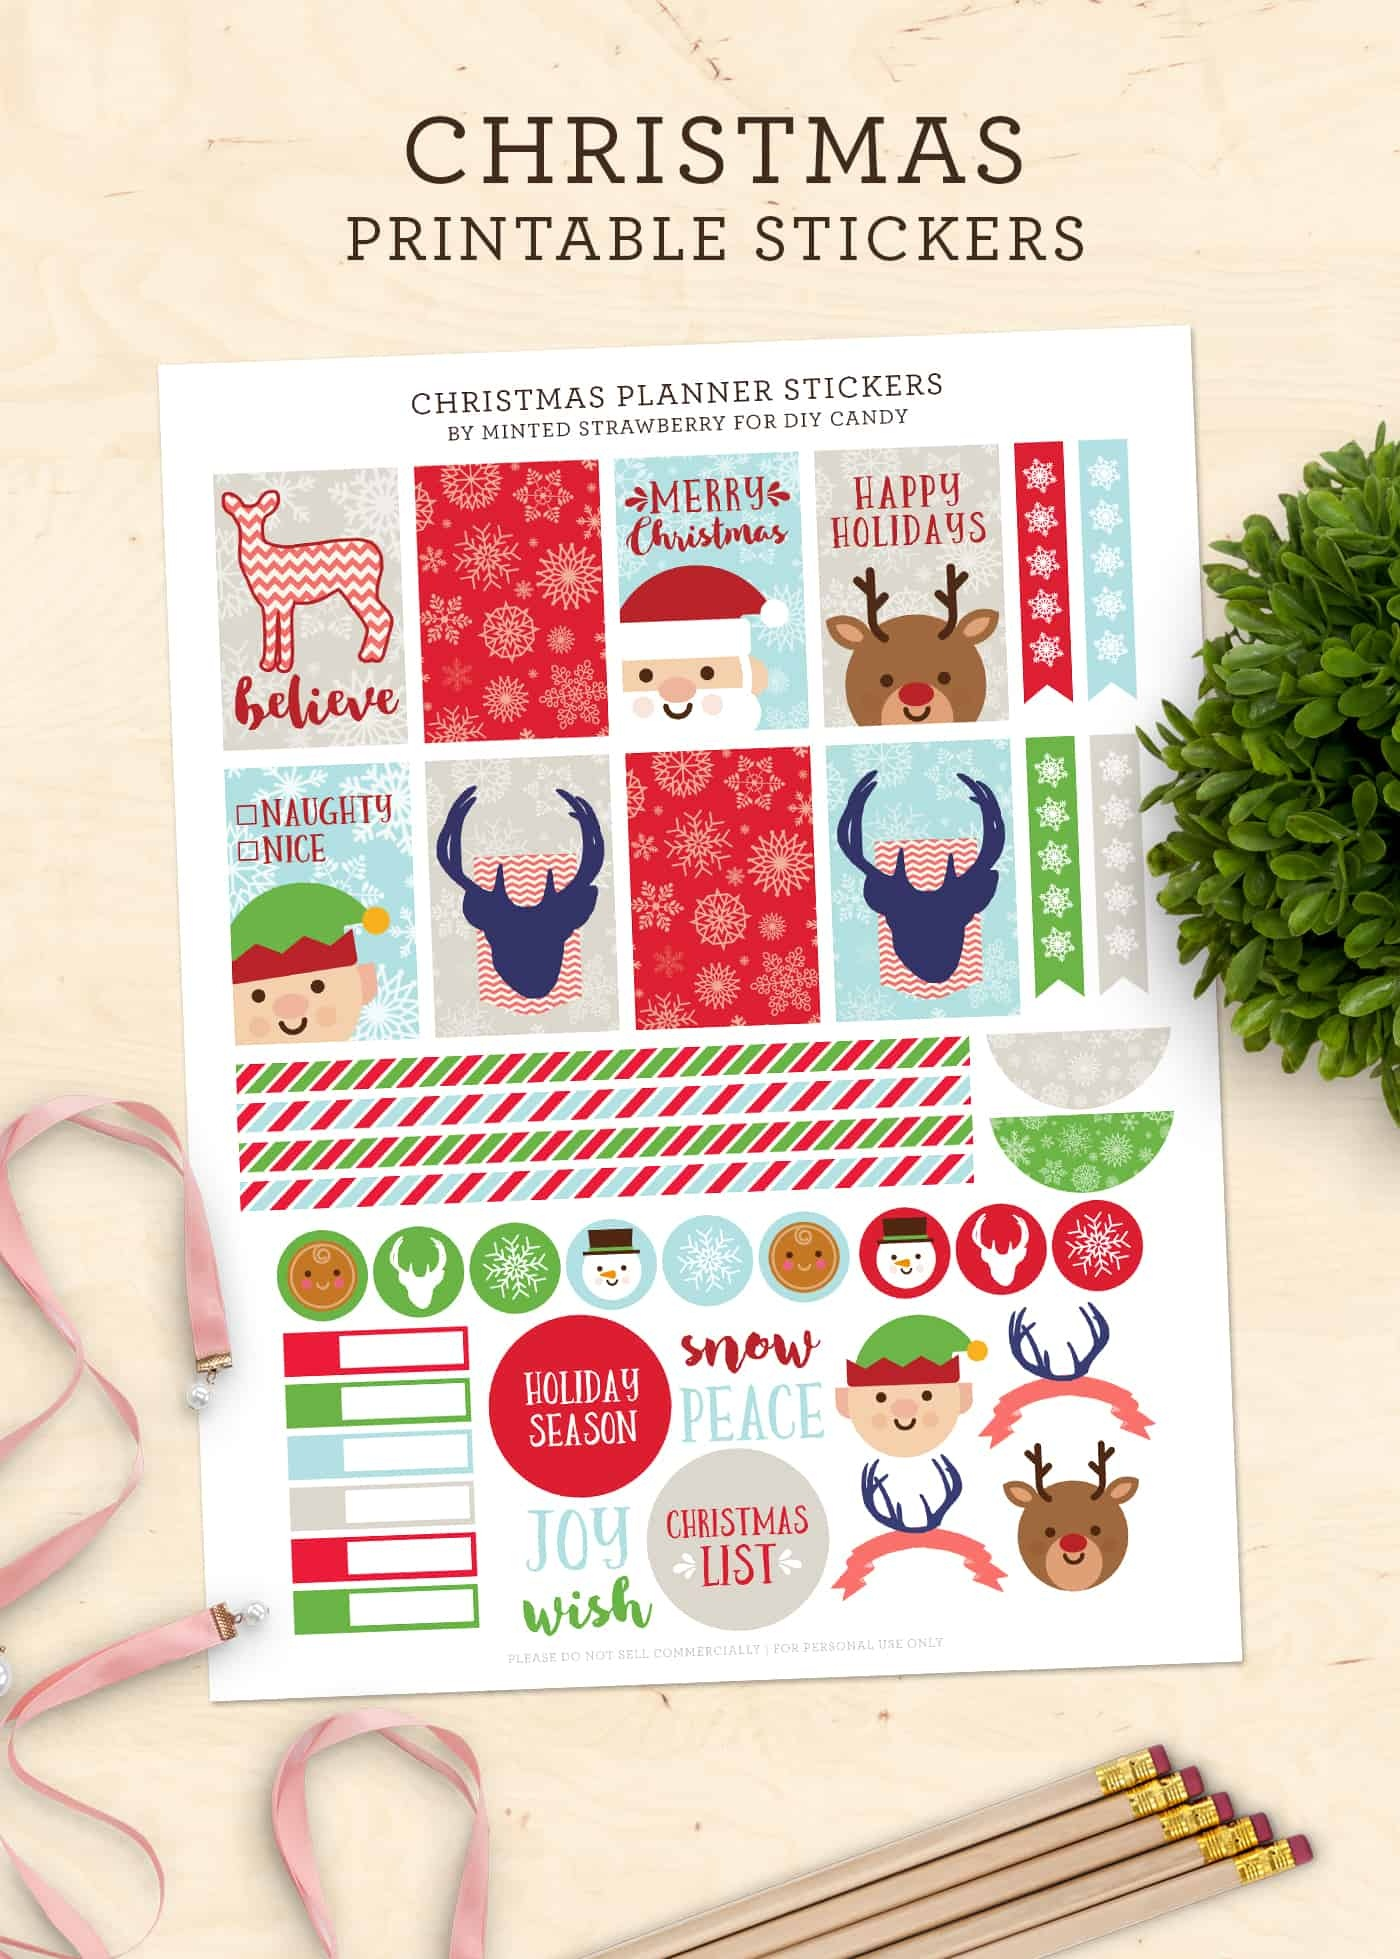 Free Christmas Stickers For Your Planner (Printable!) - Diy Candy - Free Printable Holiday Stickers